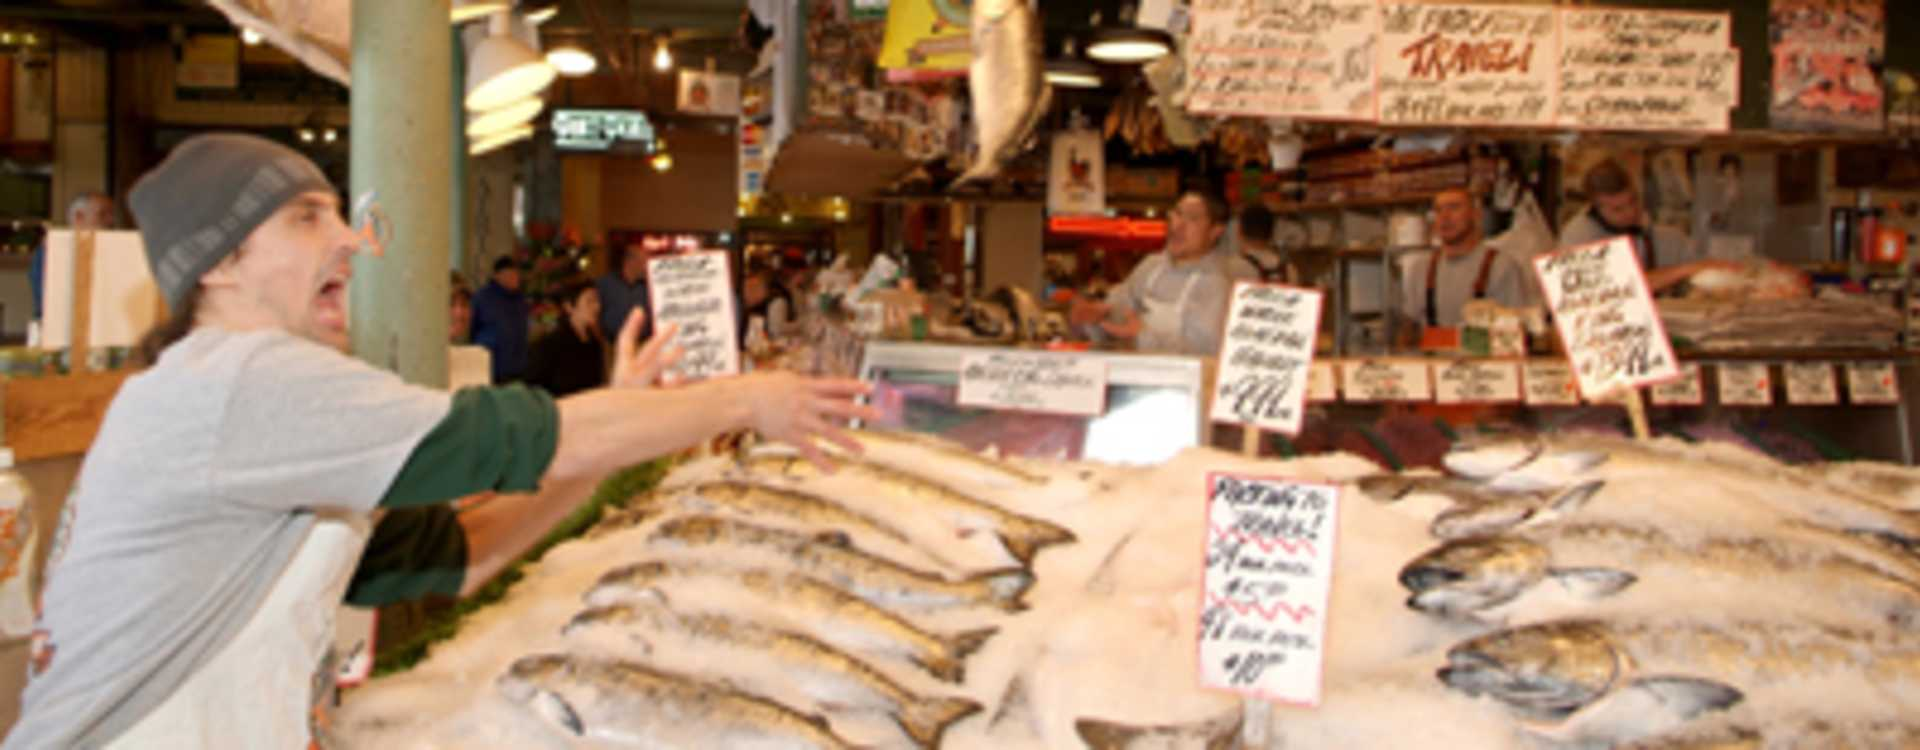 Pike_Place_Fish_Market.jpg